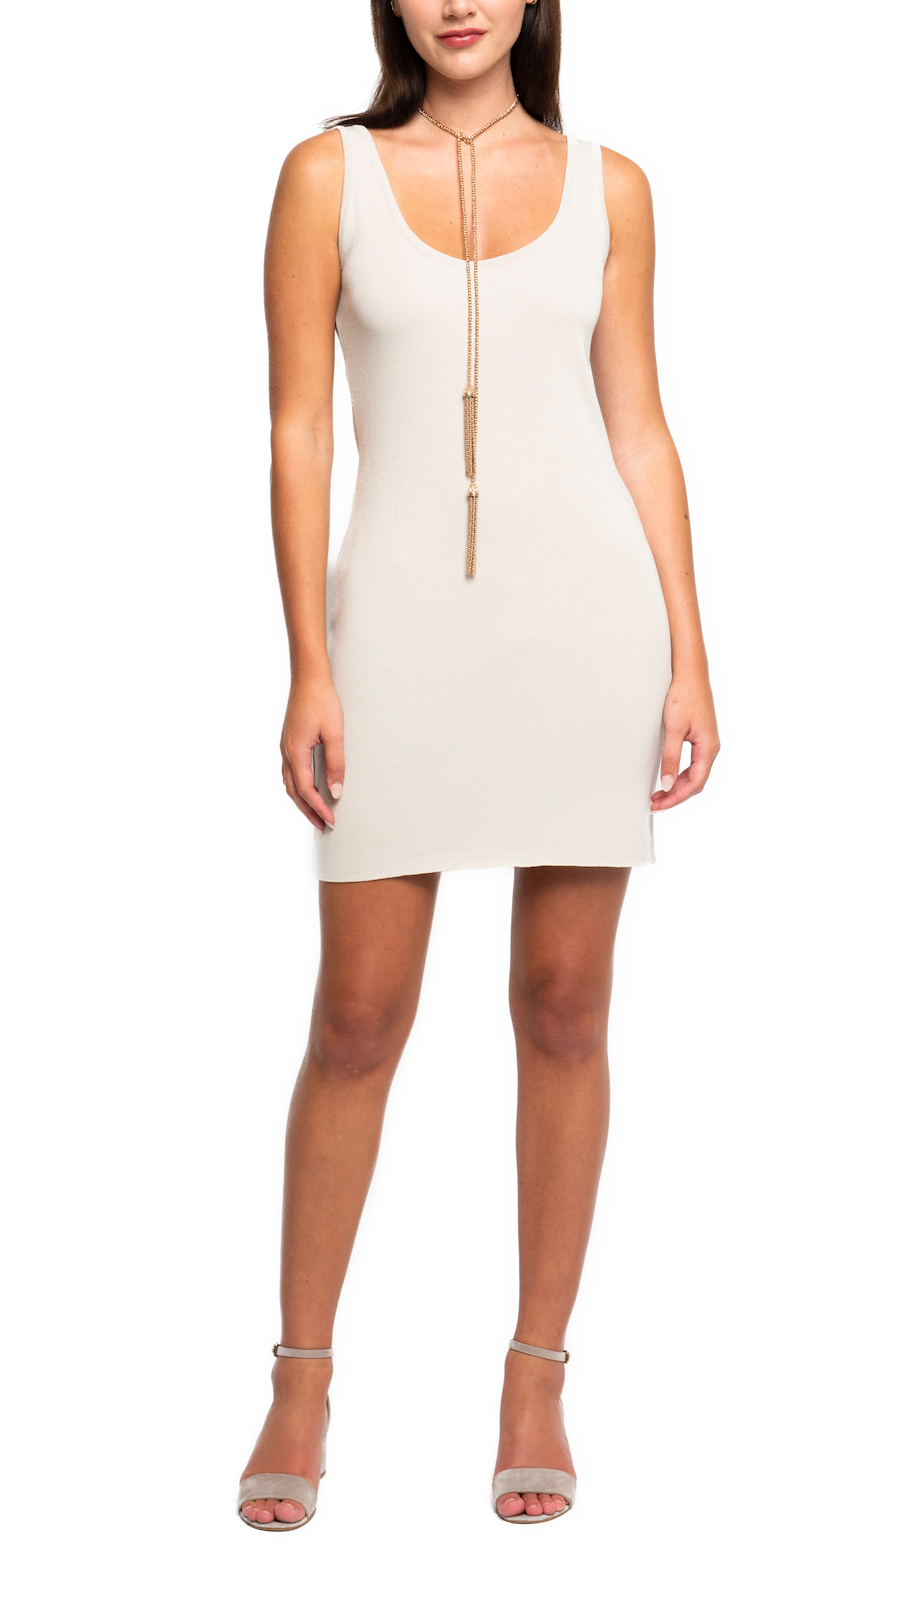 CONTEMPO Bettina Milano Knit Sleeveless Sheath Dress; Beige